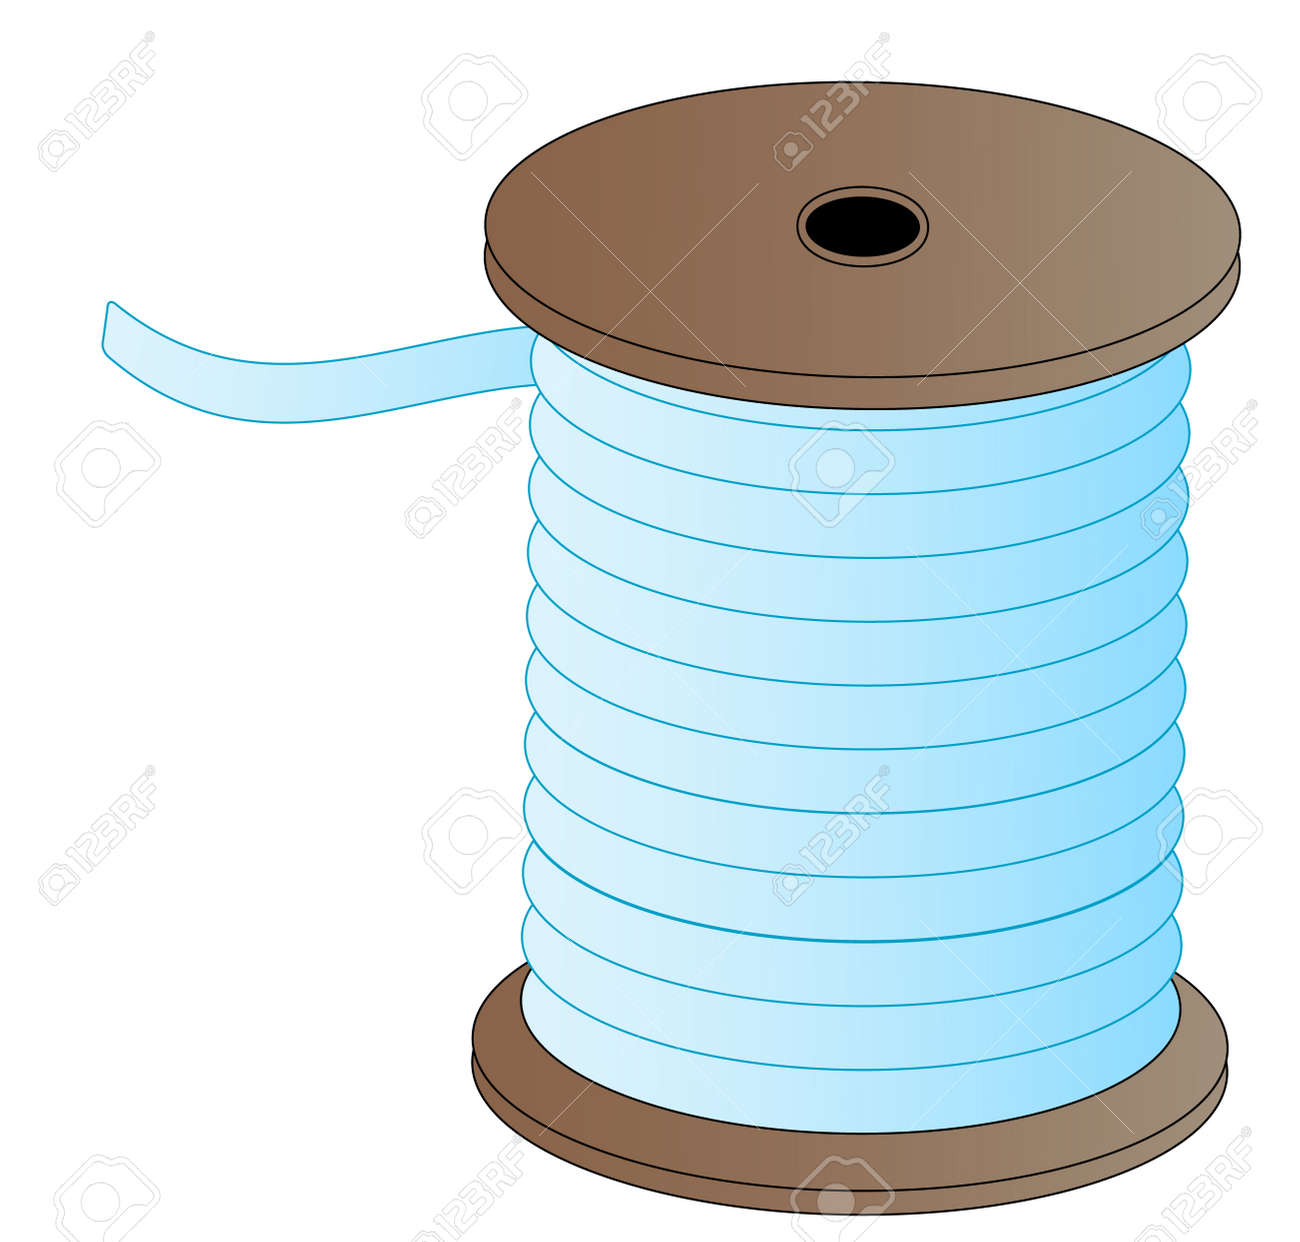 Spool Of Blue Thread On Wooded Spool - Vector Royalty Free Cliparts ...